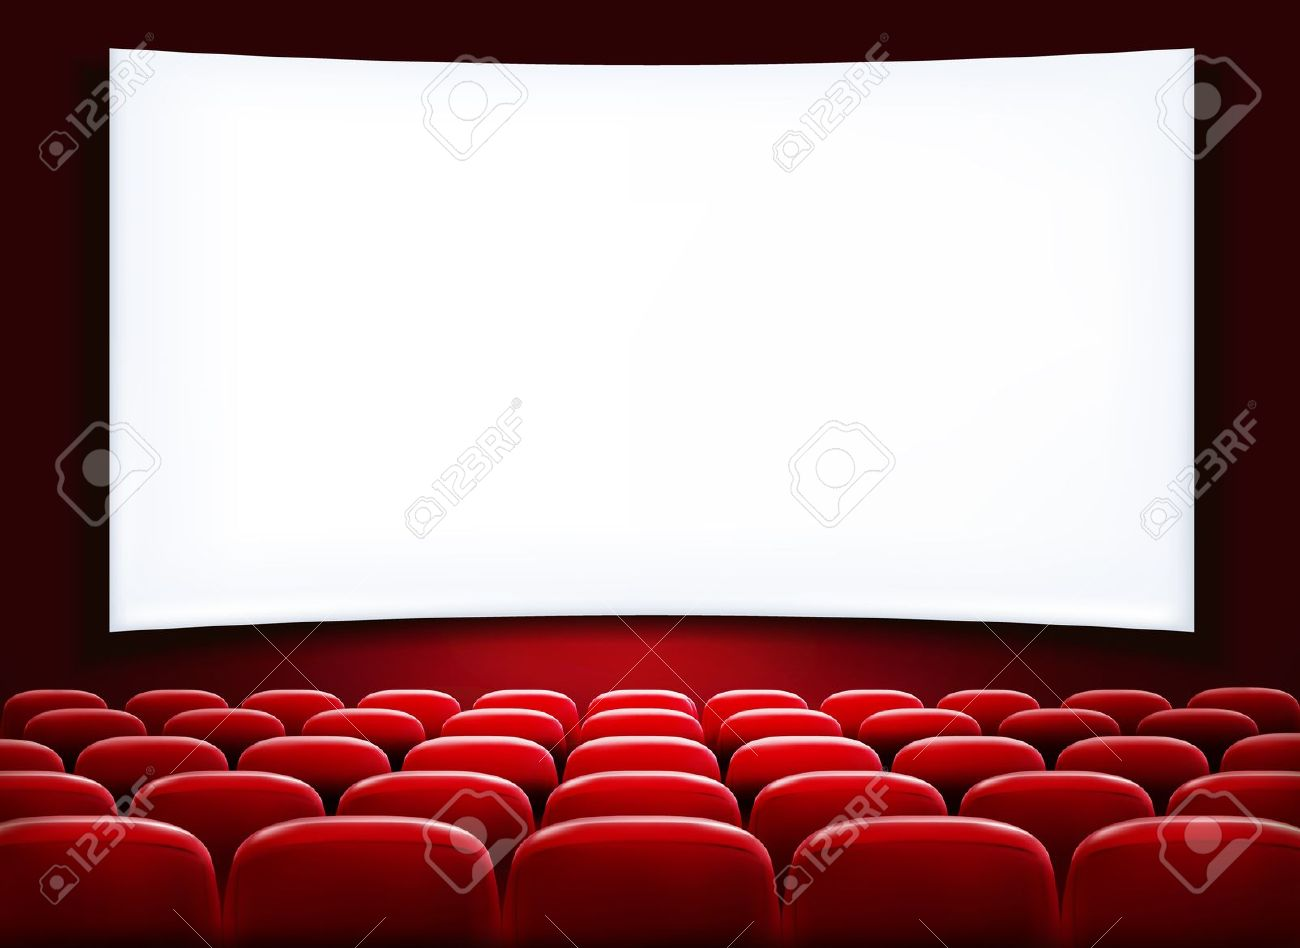 Library clipart movie theater building Of Theatre Clipart Screen Or